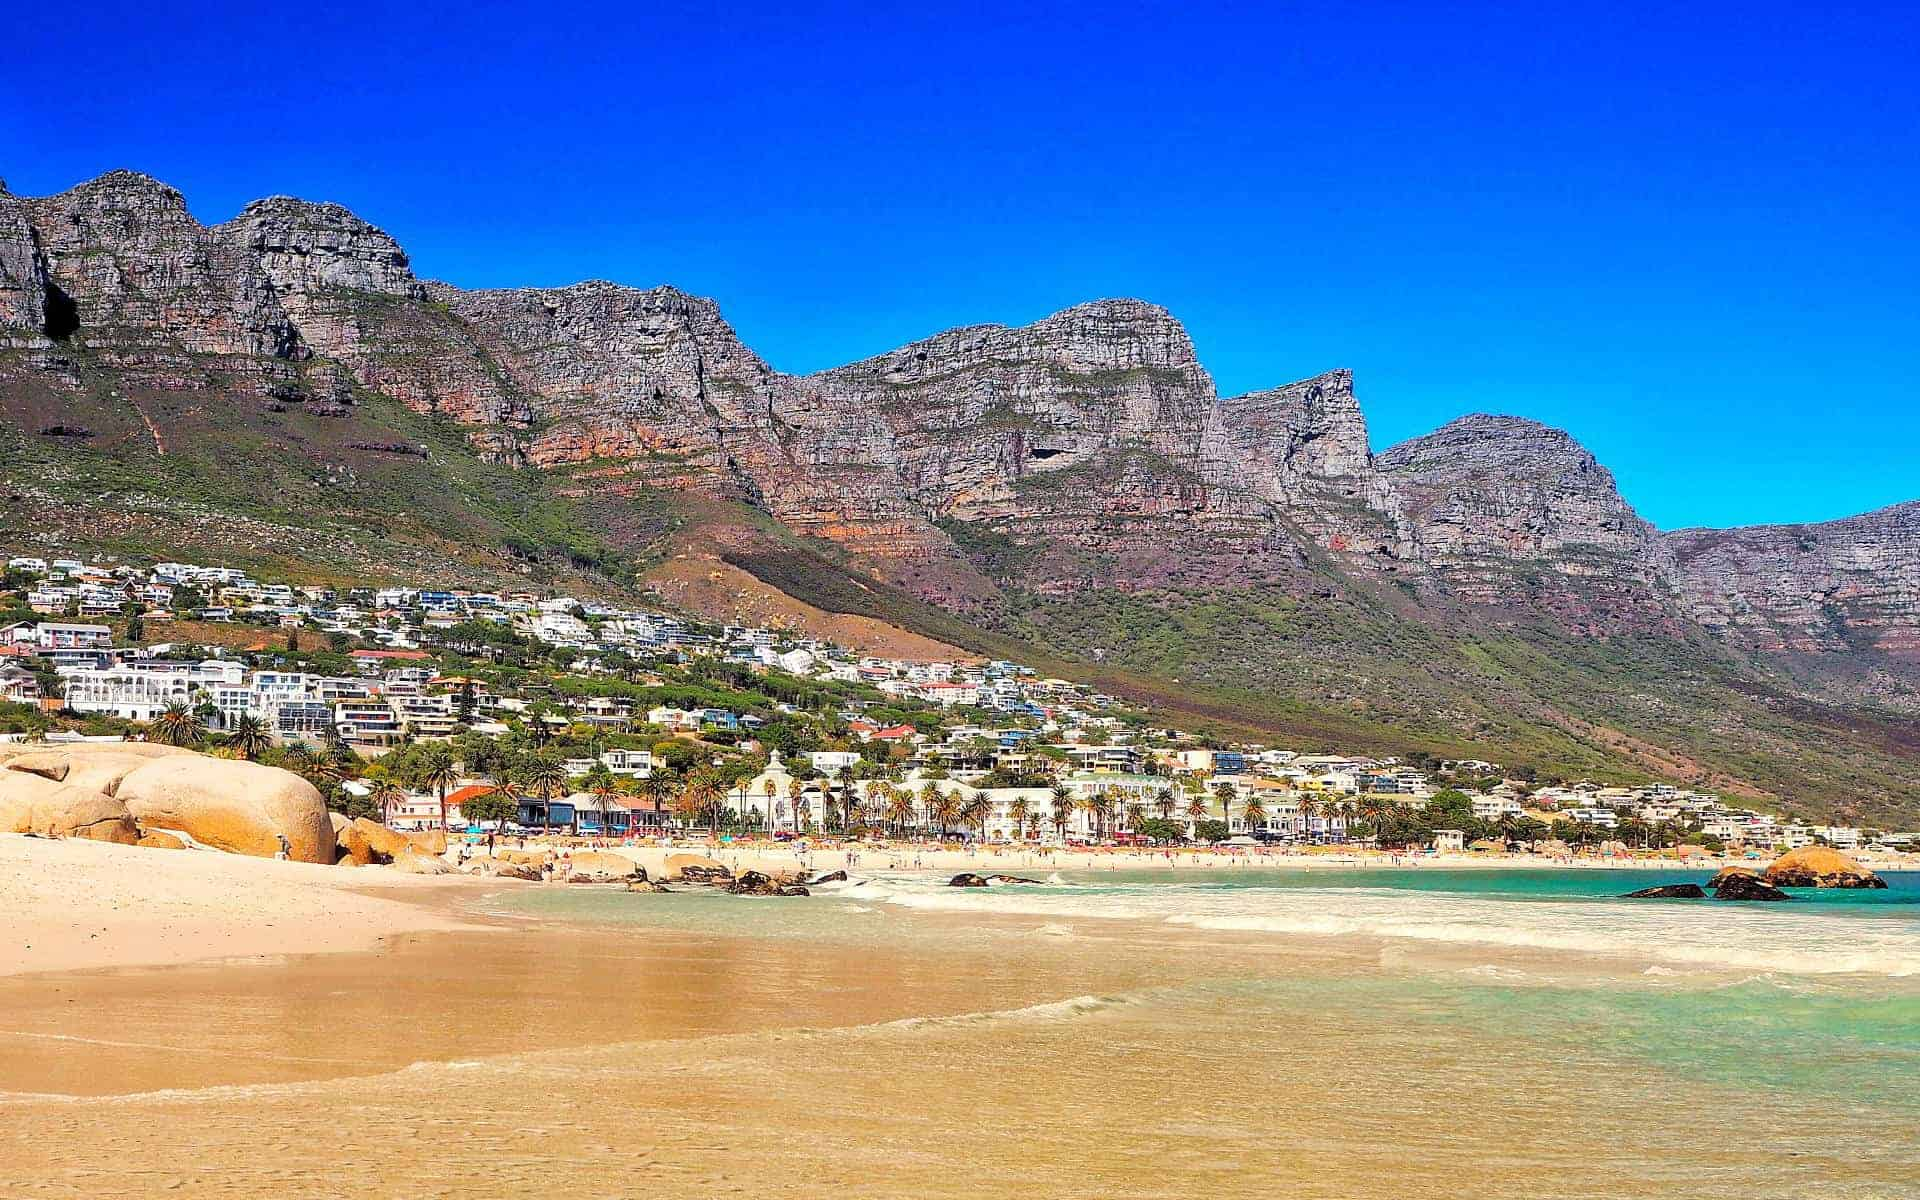 South Africa itinerary - 2 week road trip Johannesburg to Cape Town